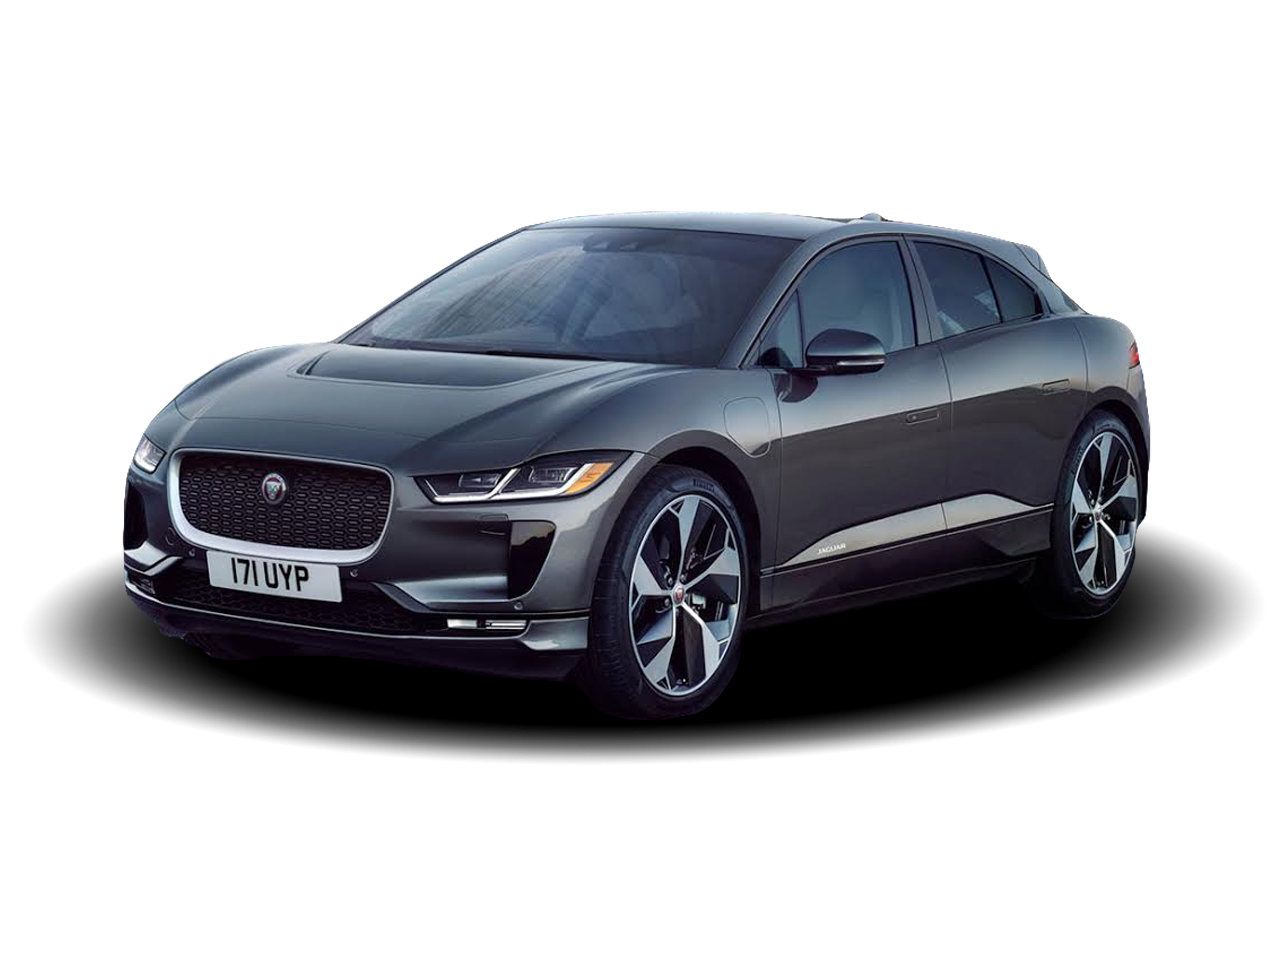 Perfect Test Drive A 2019 Jaguar I PACE At Galpin Jaguar In Los Angeles